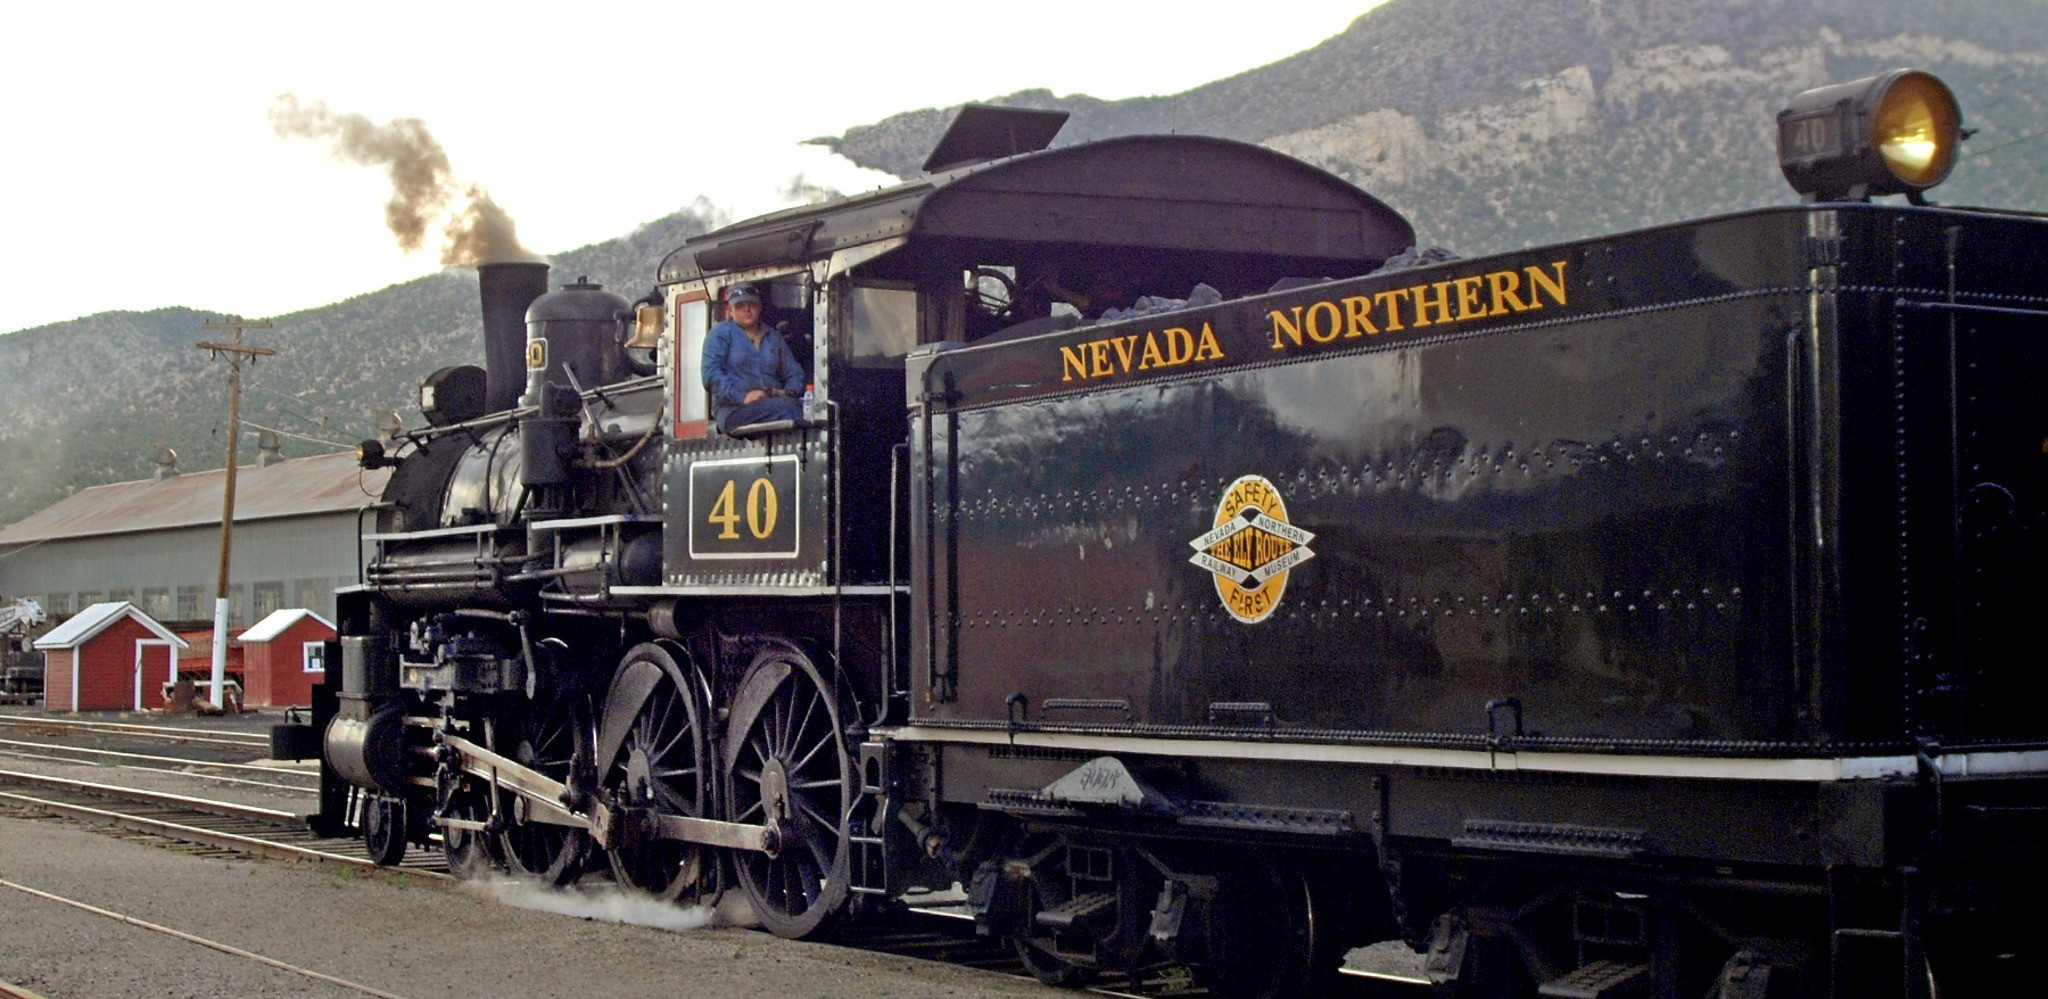 Weekend Escape: Ely, Nevada - Nevada Northern Railway Museum